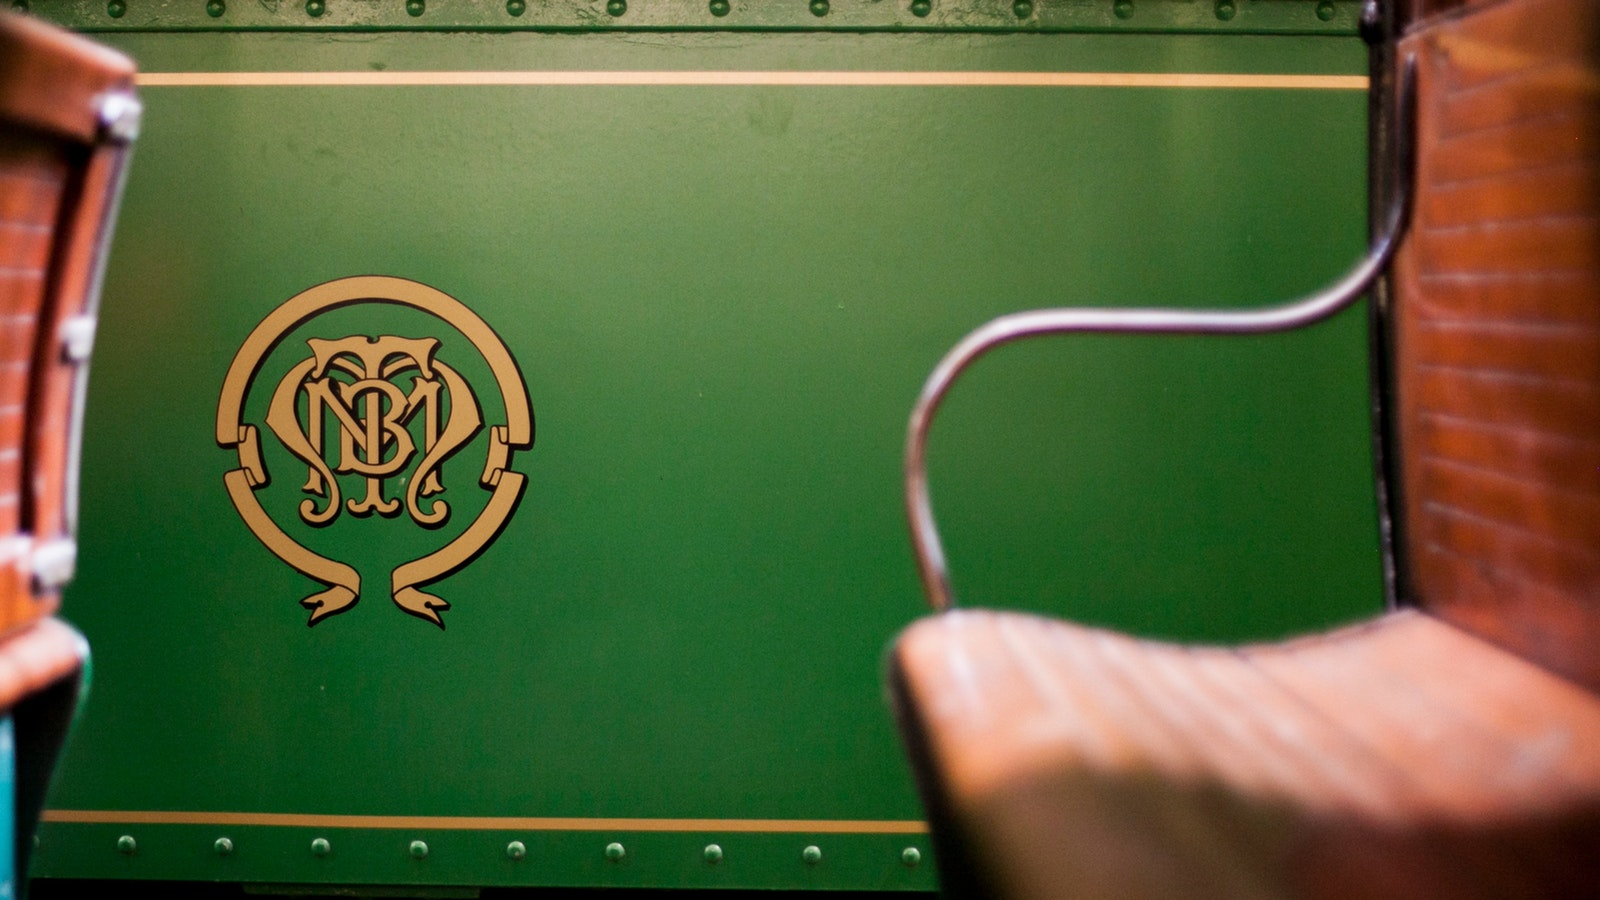 Side view of tramcar, featuring distinctive monogram crest of the Melbourne and Metropolitan Tramway